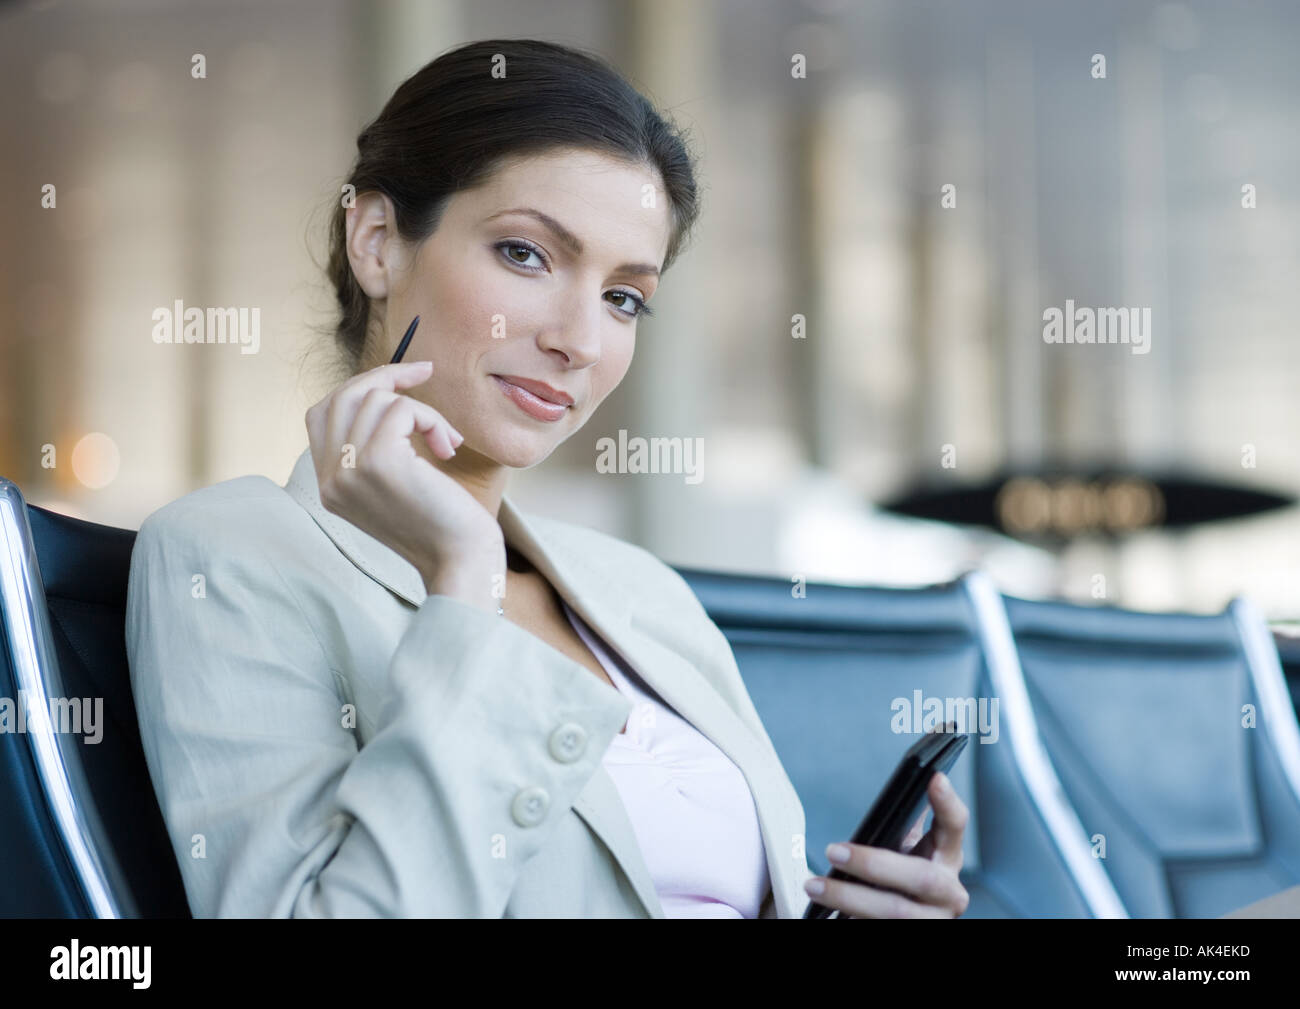 Businesswoman using electronic organizer in airport lounge, smiling at camera - Stock Image